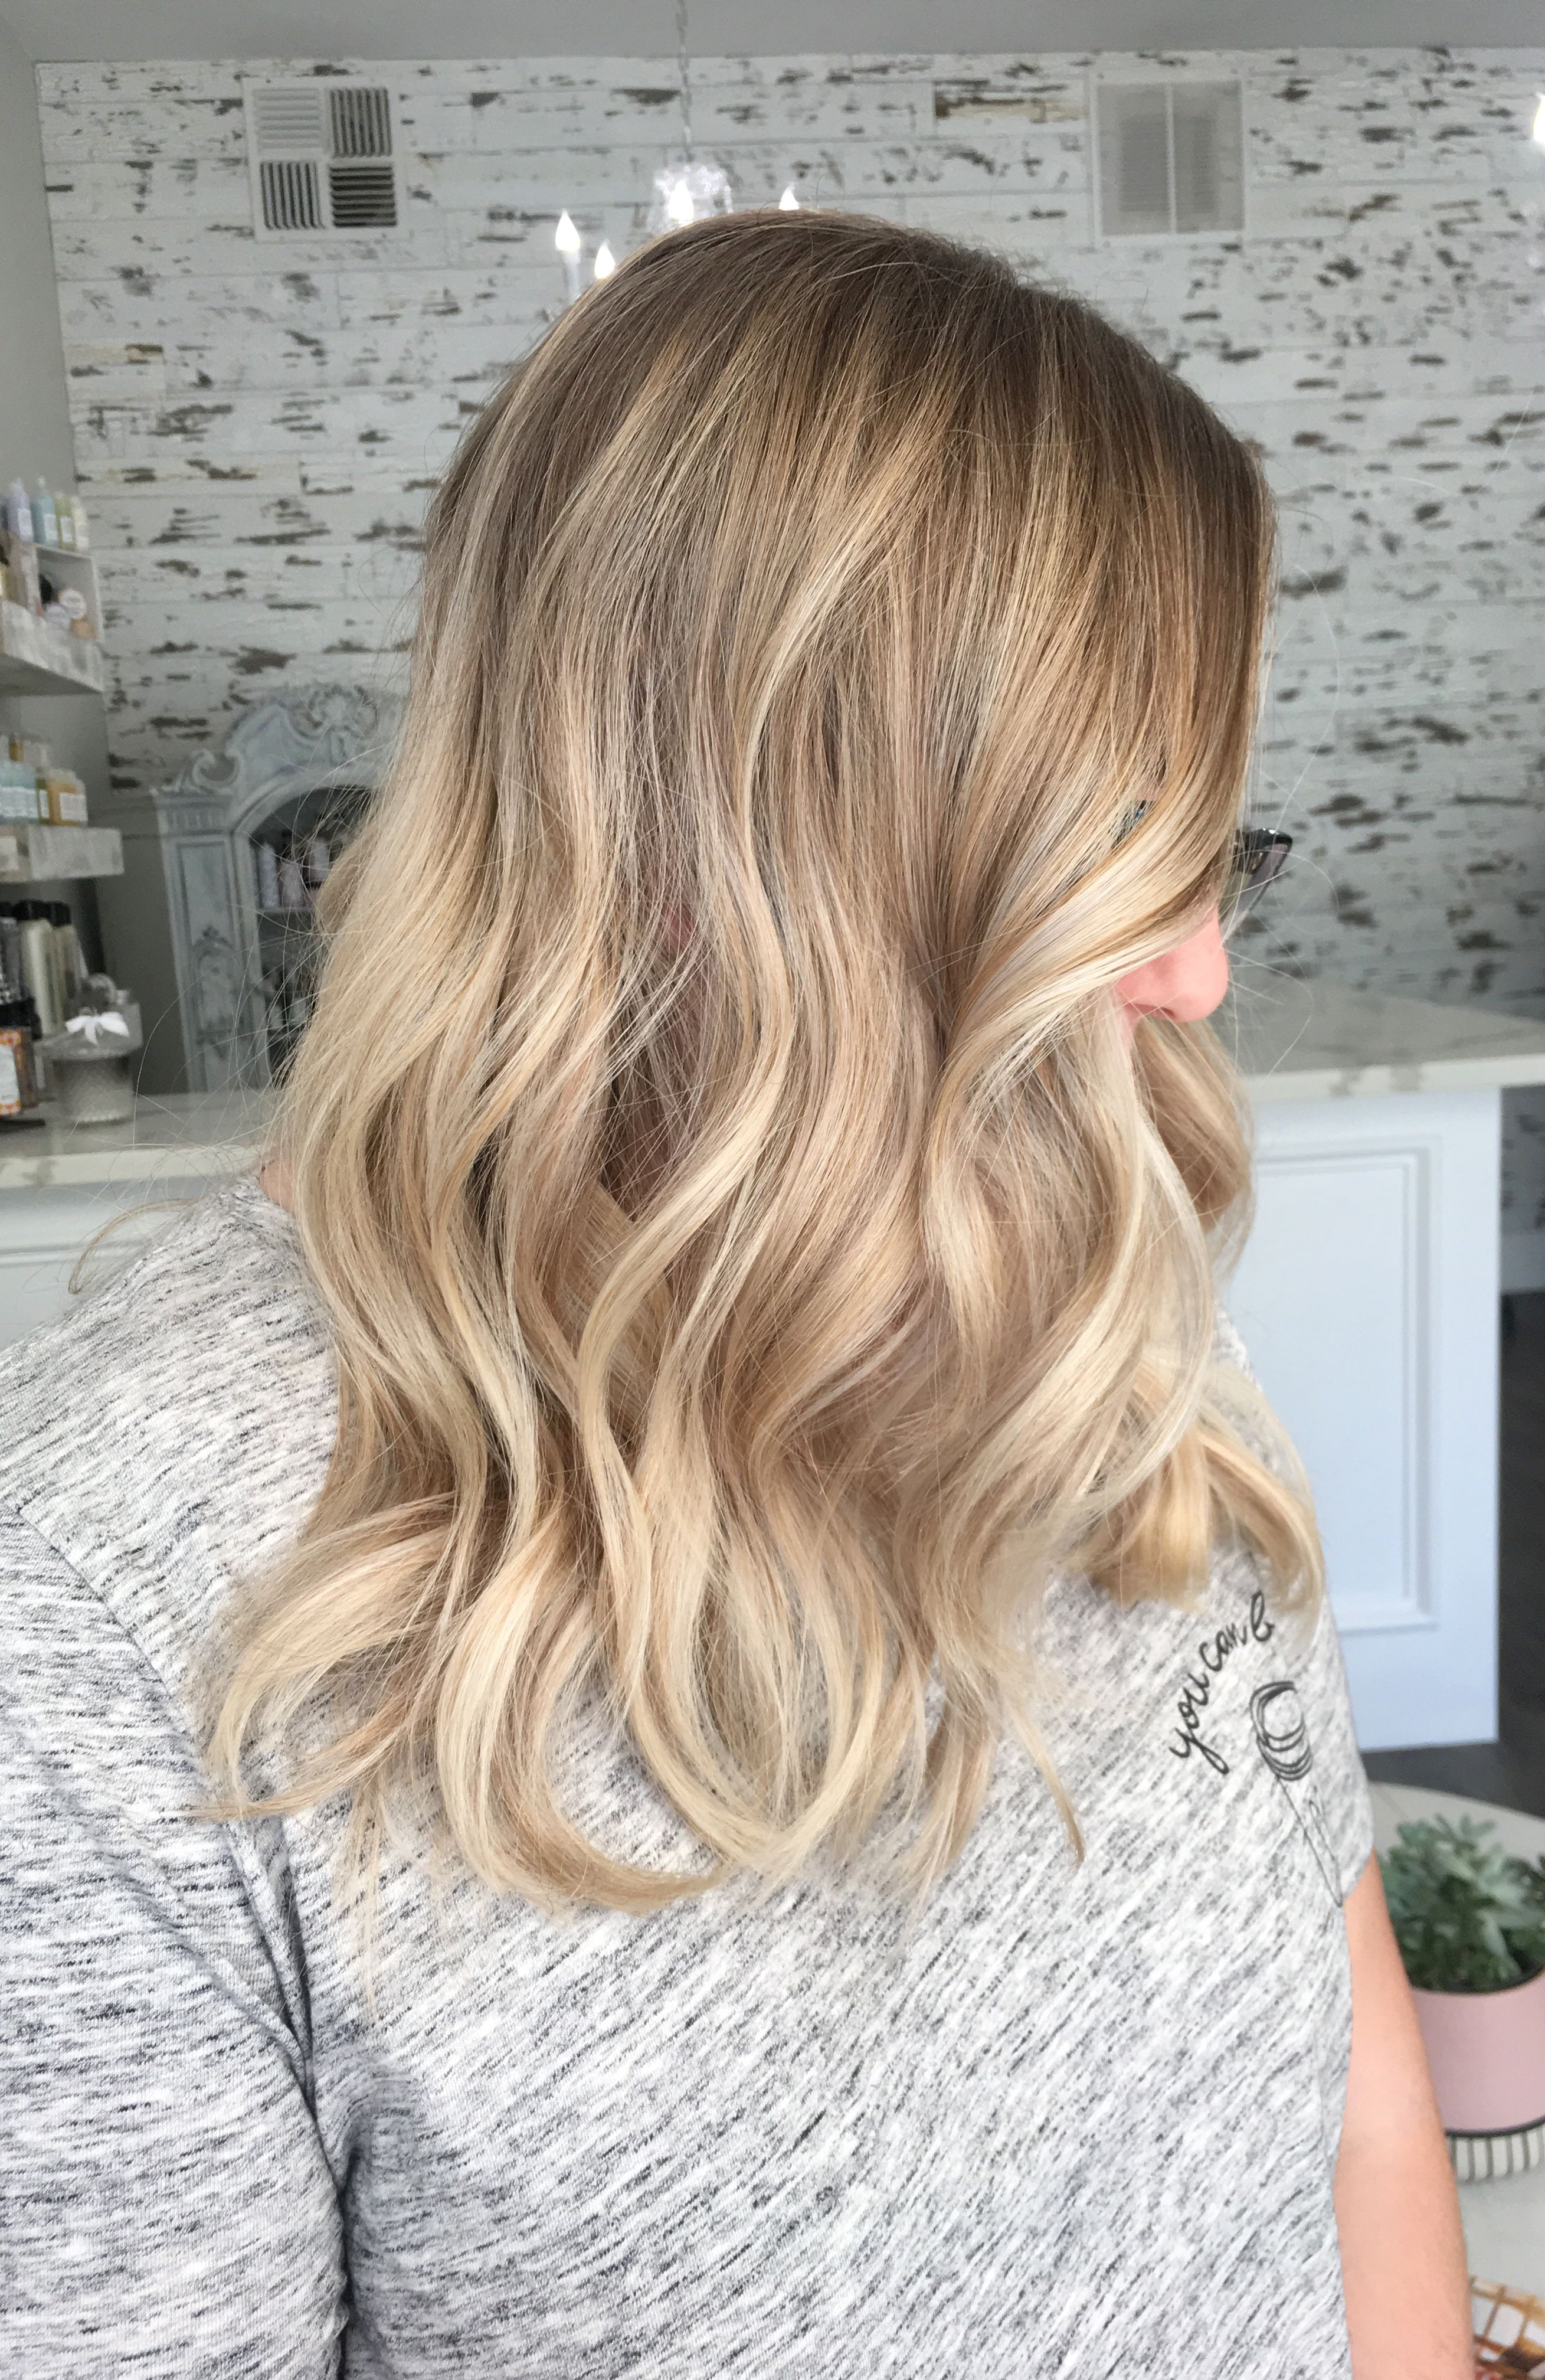 blonde balayage hair by kayla common roseville,ca | be